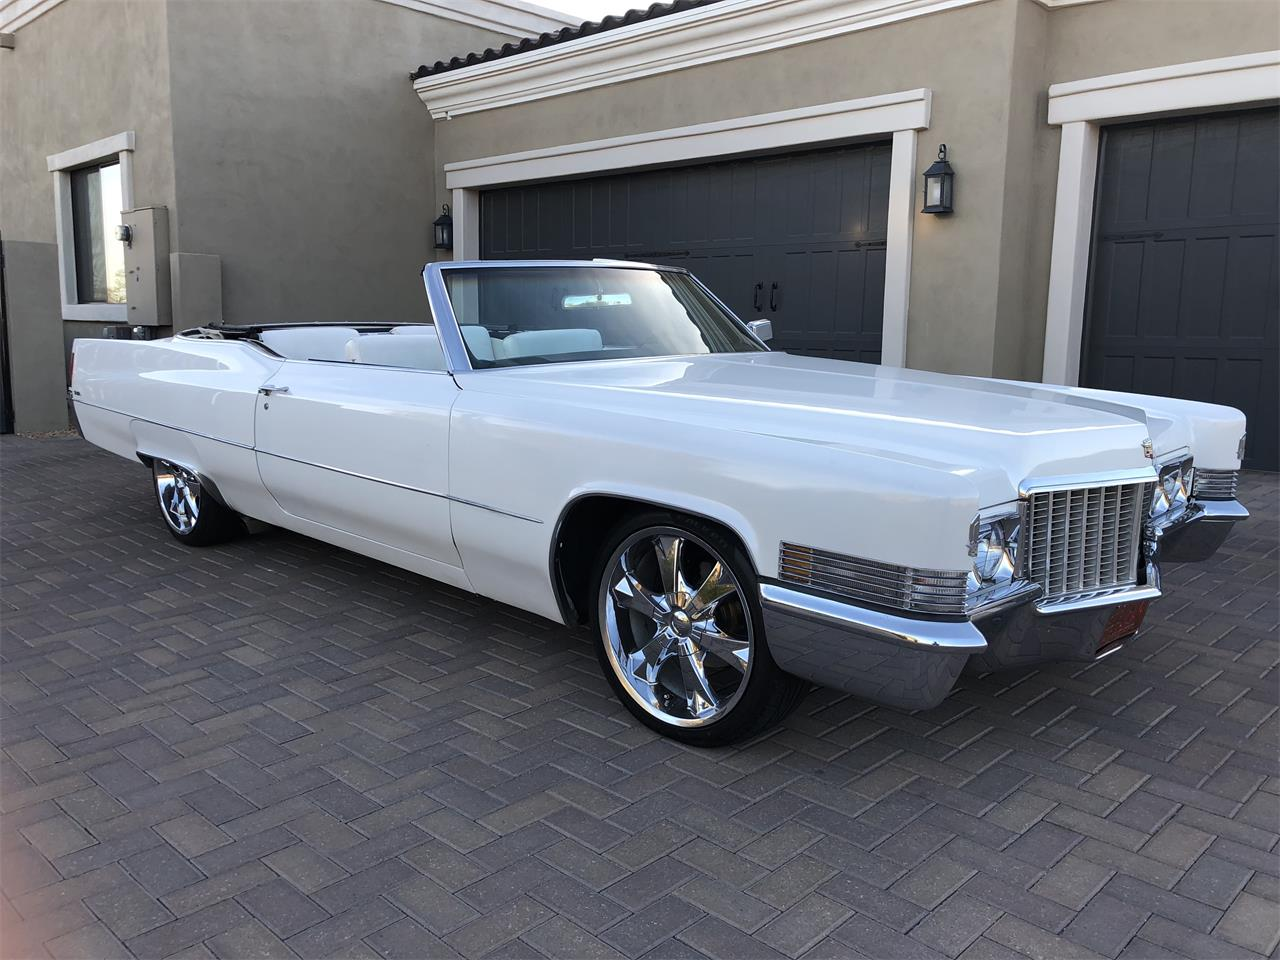 Large Picture of Classic 1970 Cadillac DeVille located in Arizona Offered by a Private Seller - N2JC